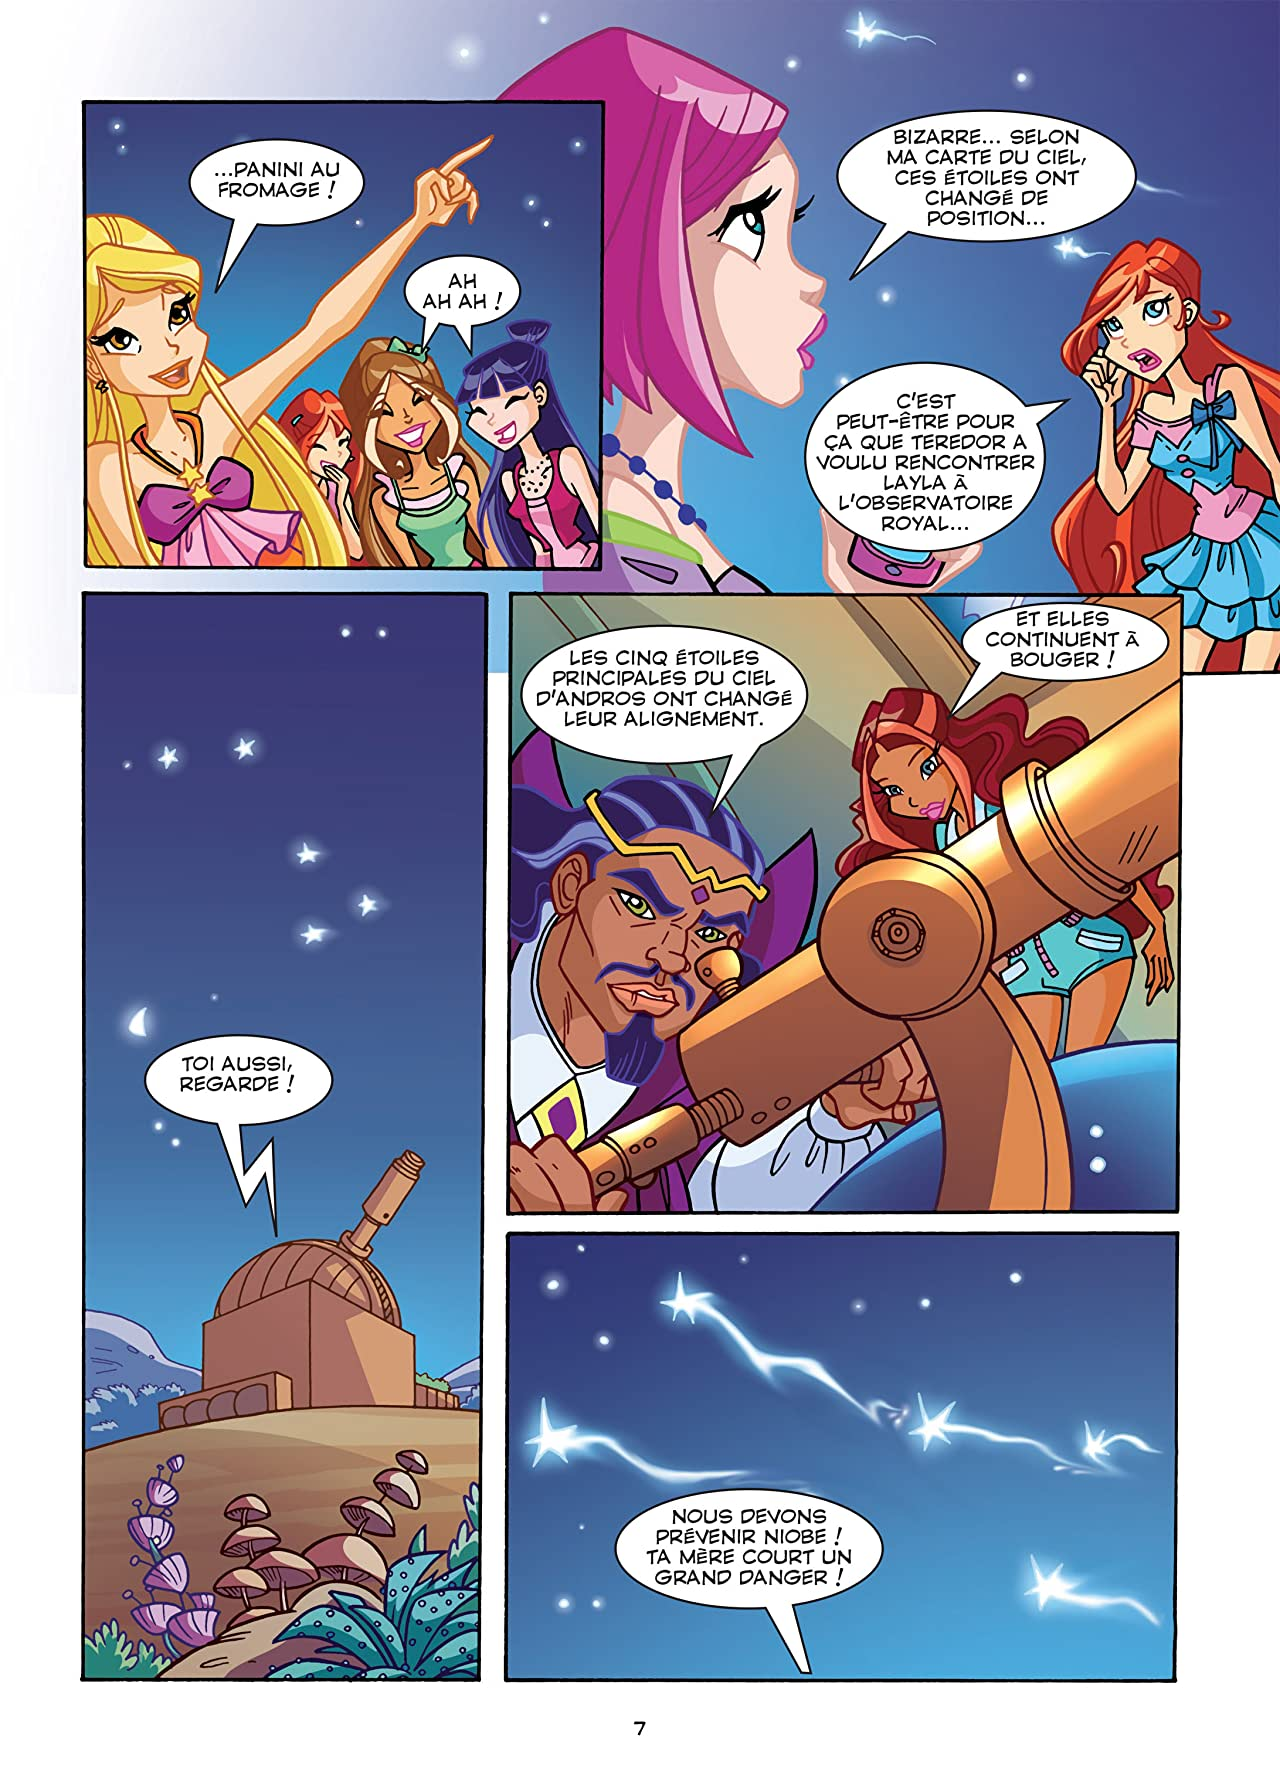 Winx Club #107: Les sirènes obscures